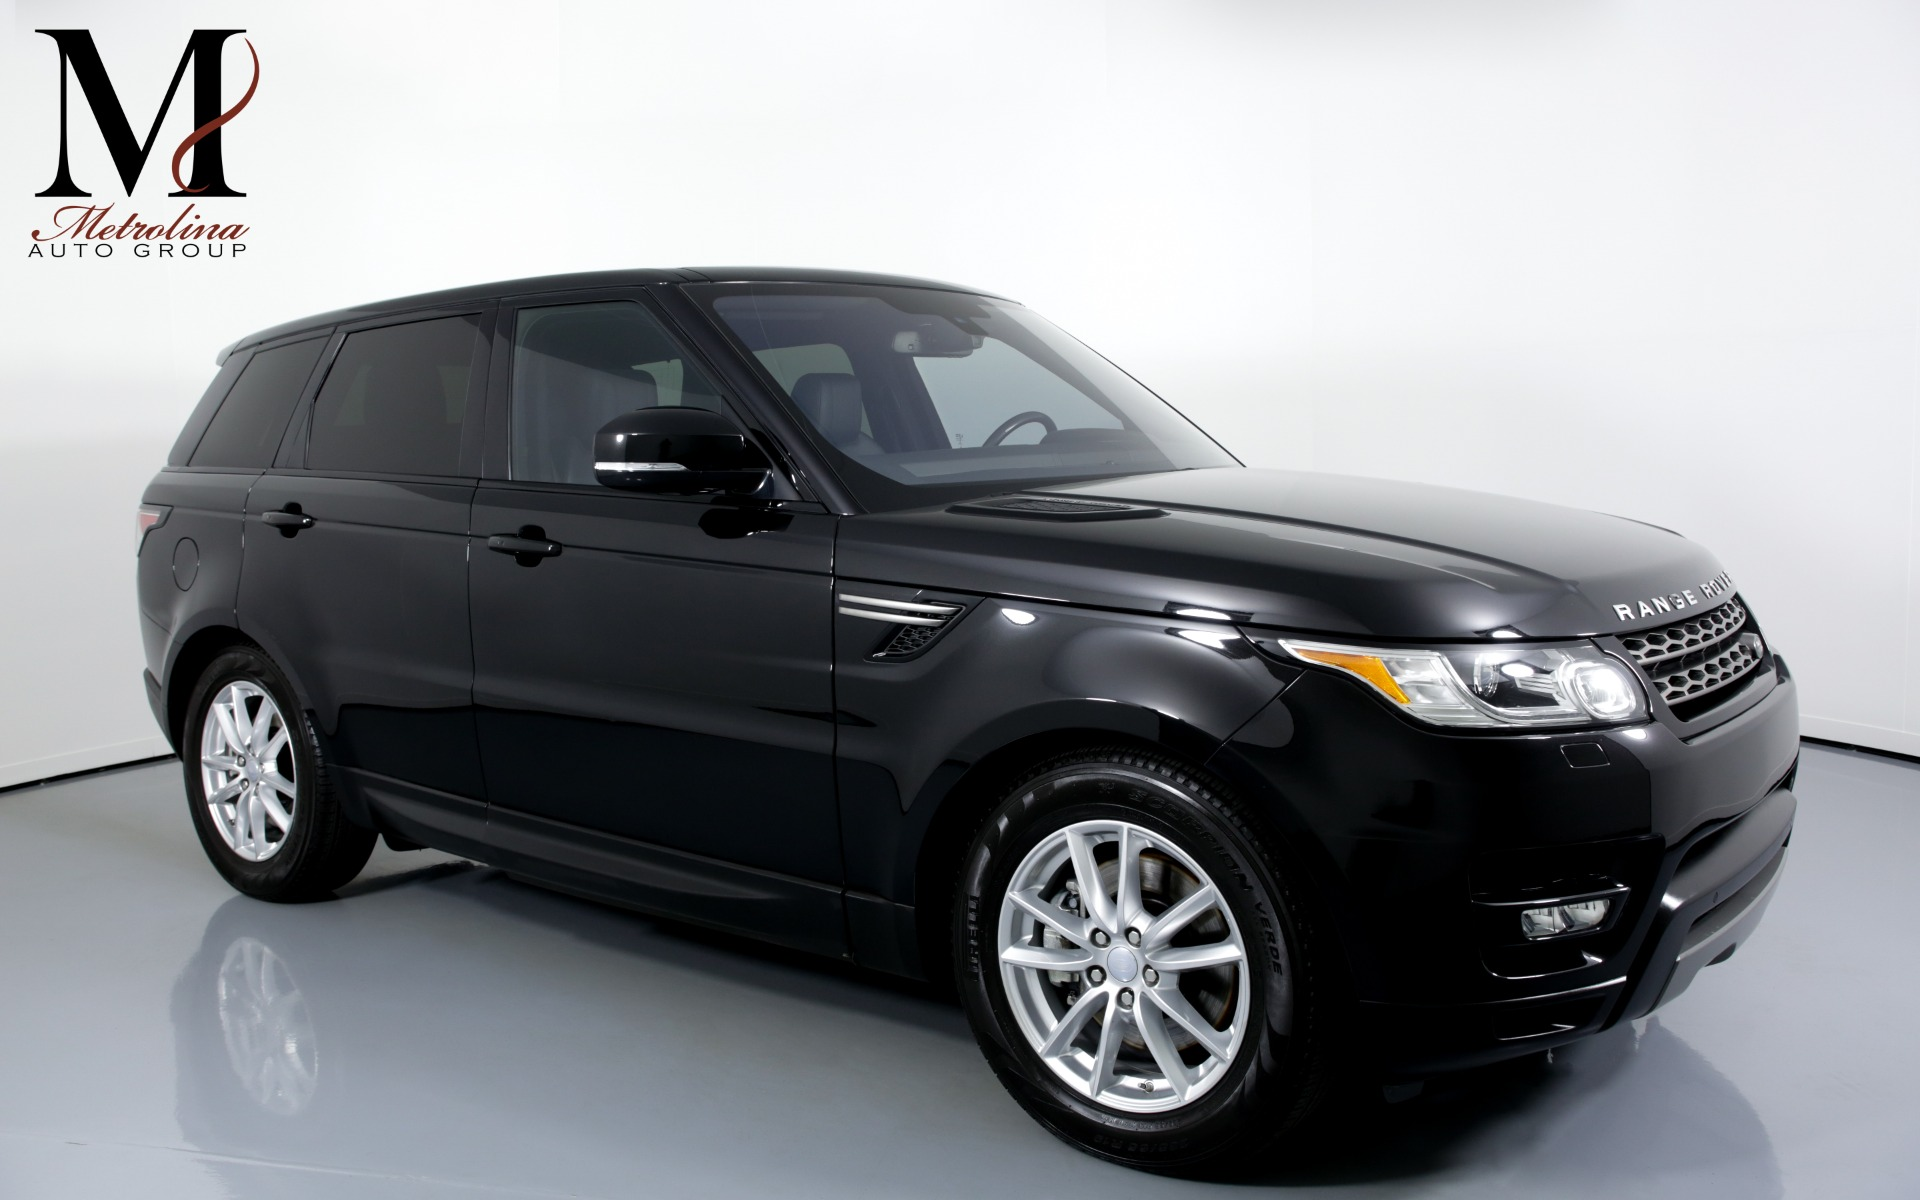 Used 2016 Land Rover Range Rover Sport SE AWD 4dr SUV for sale $37,900 at Metrolina Auto Group in Charlotte NC 28217 - 1